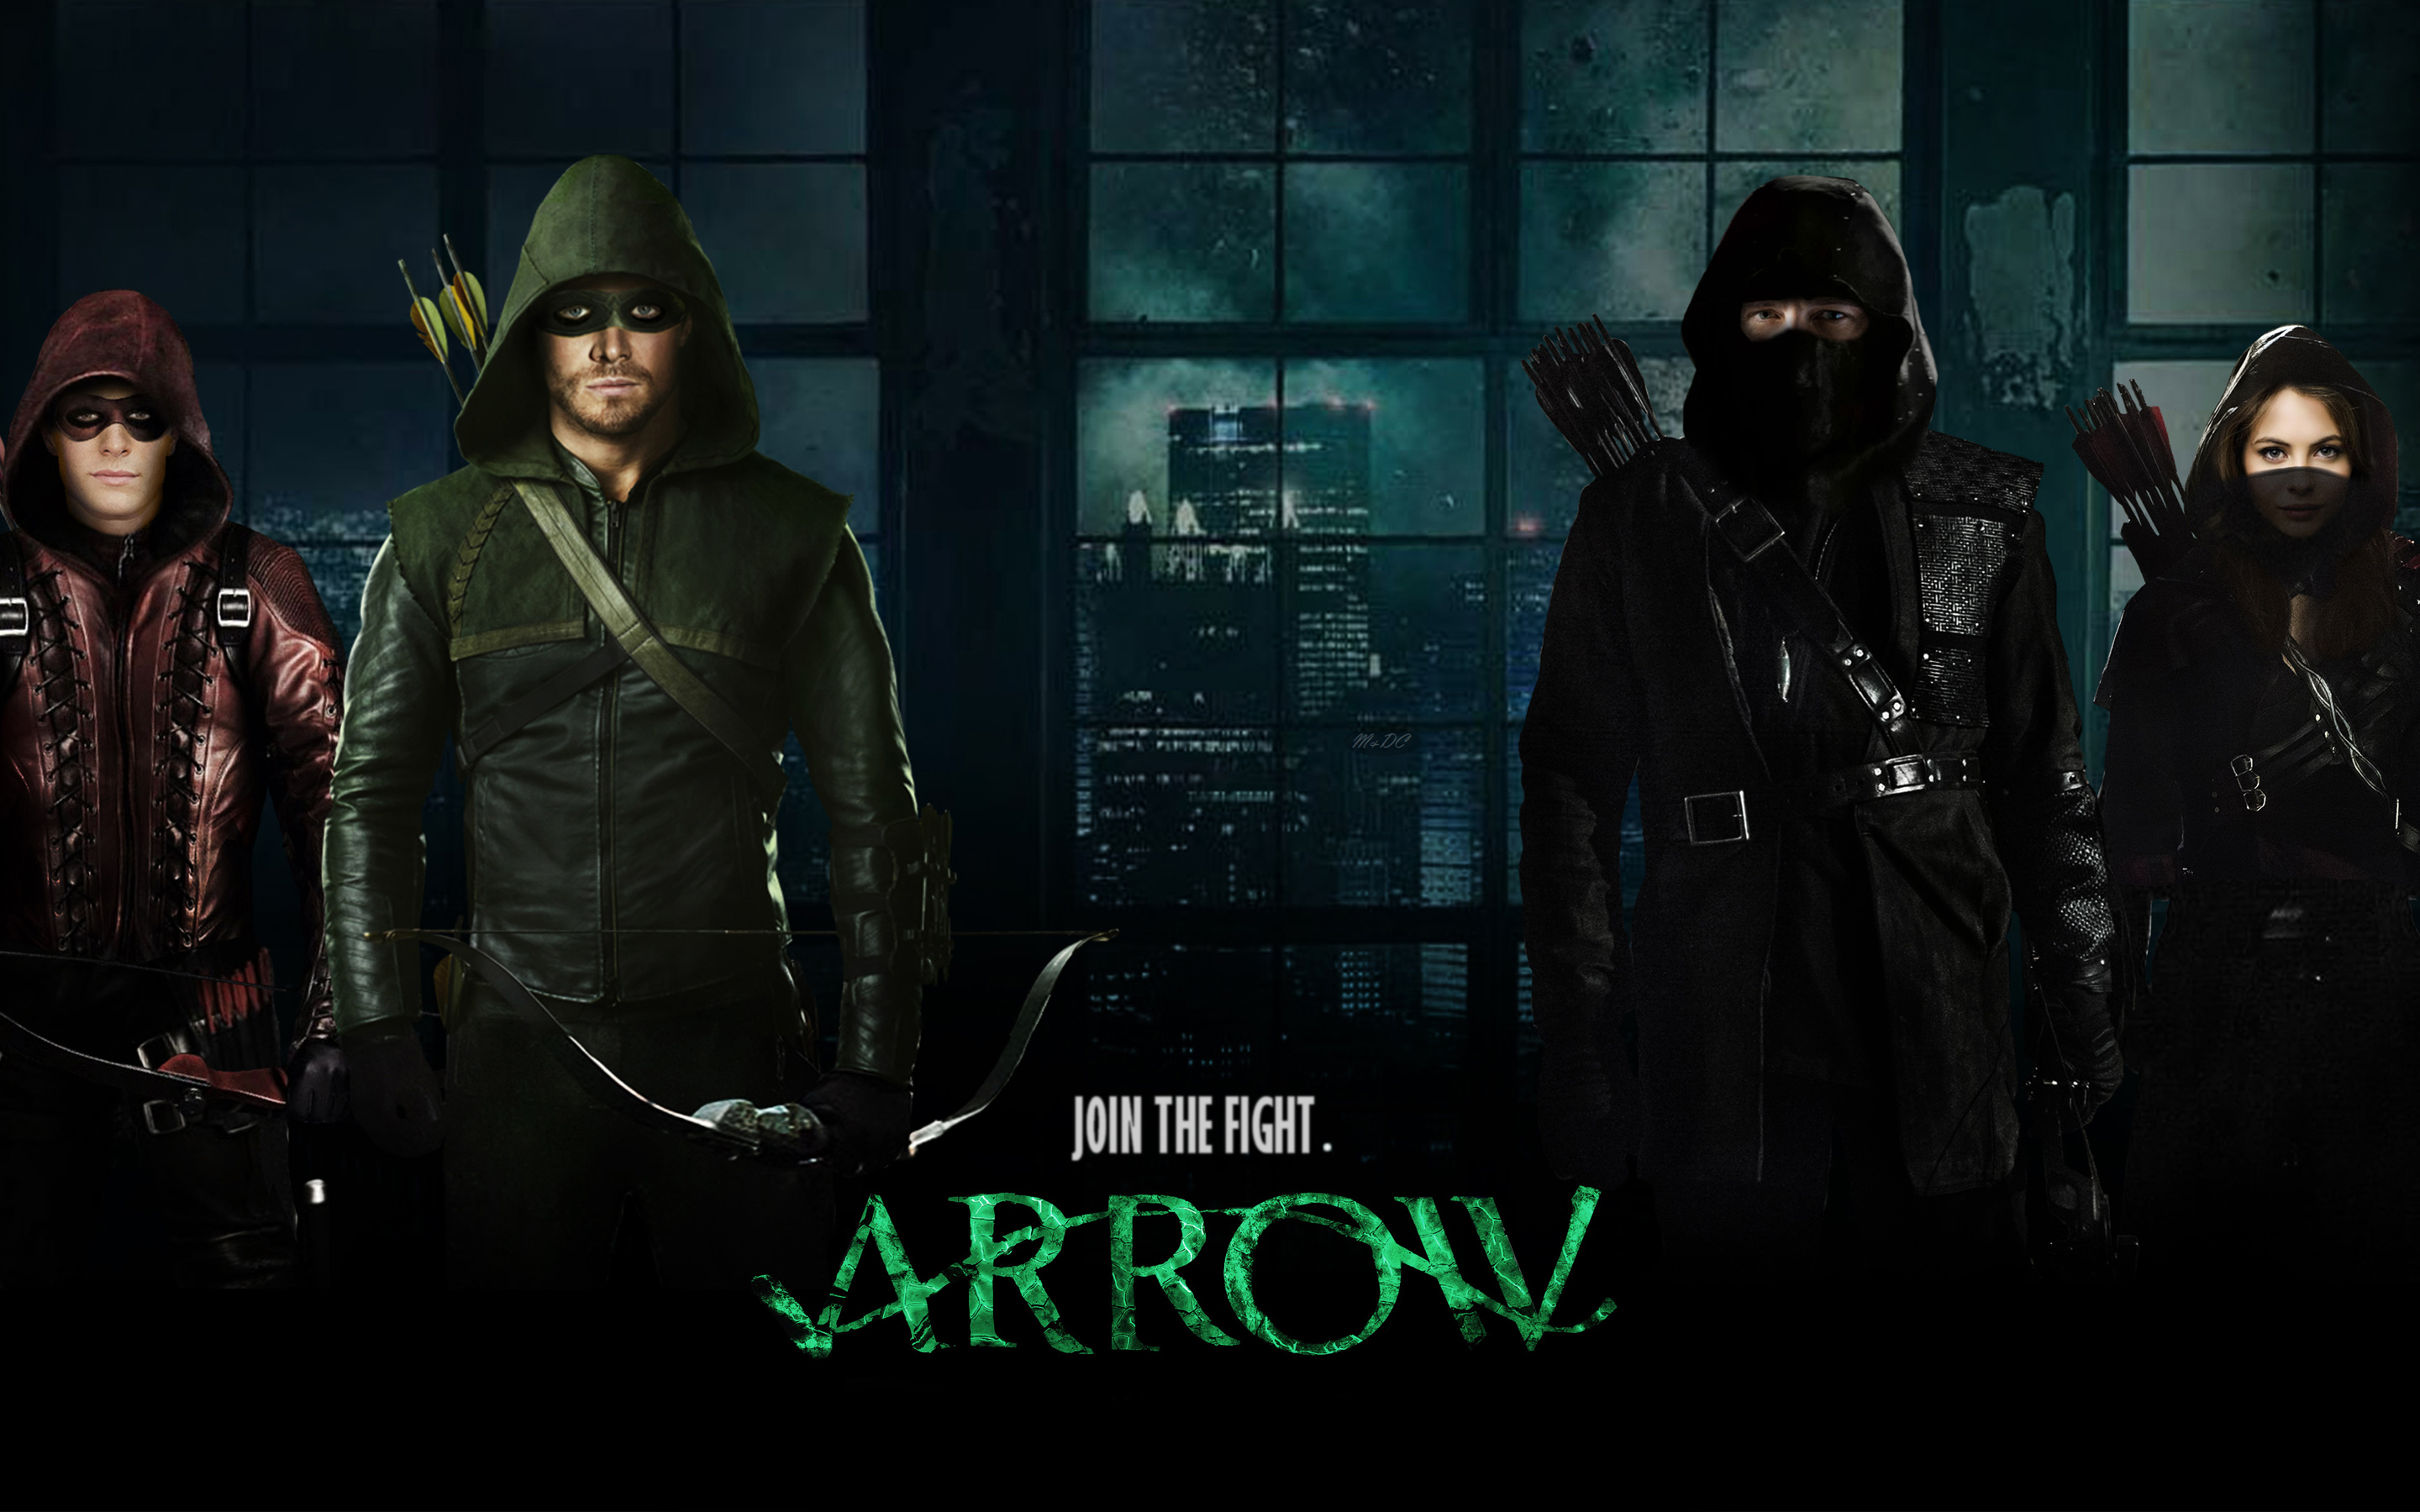 HD Wallpapers Arrow Season 3 2014